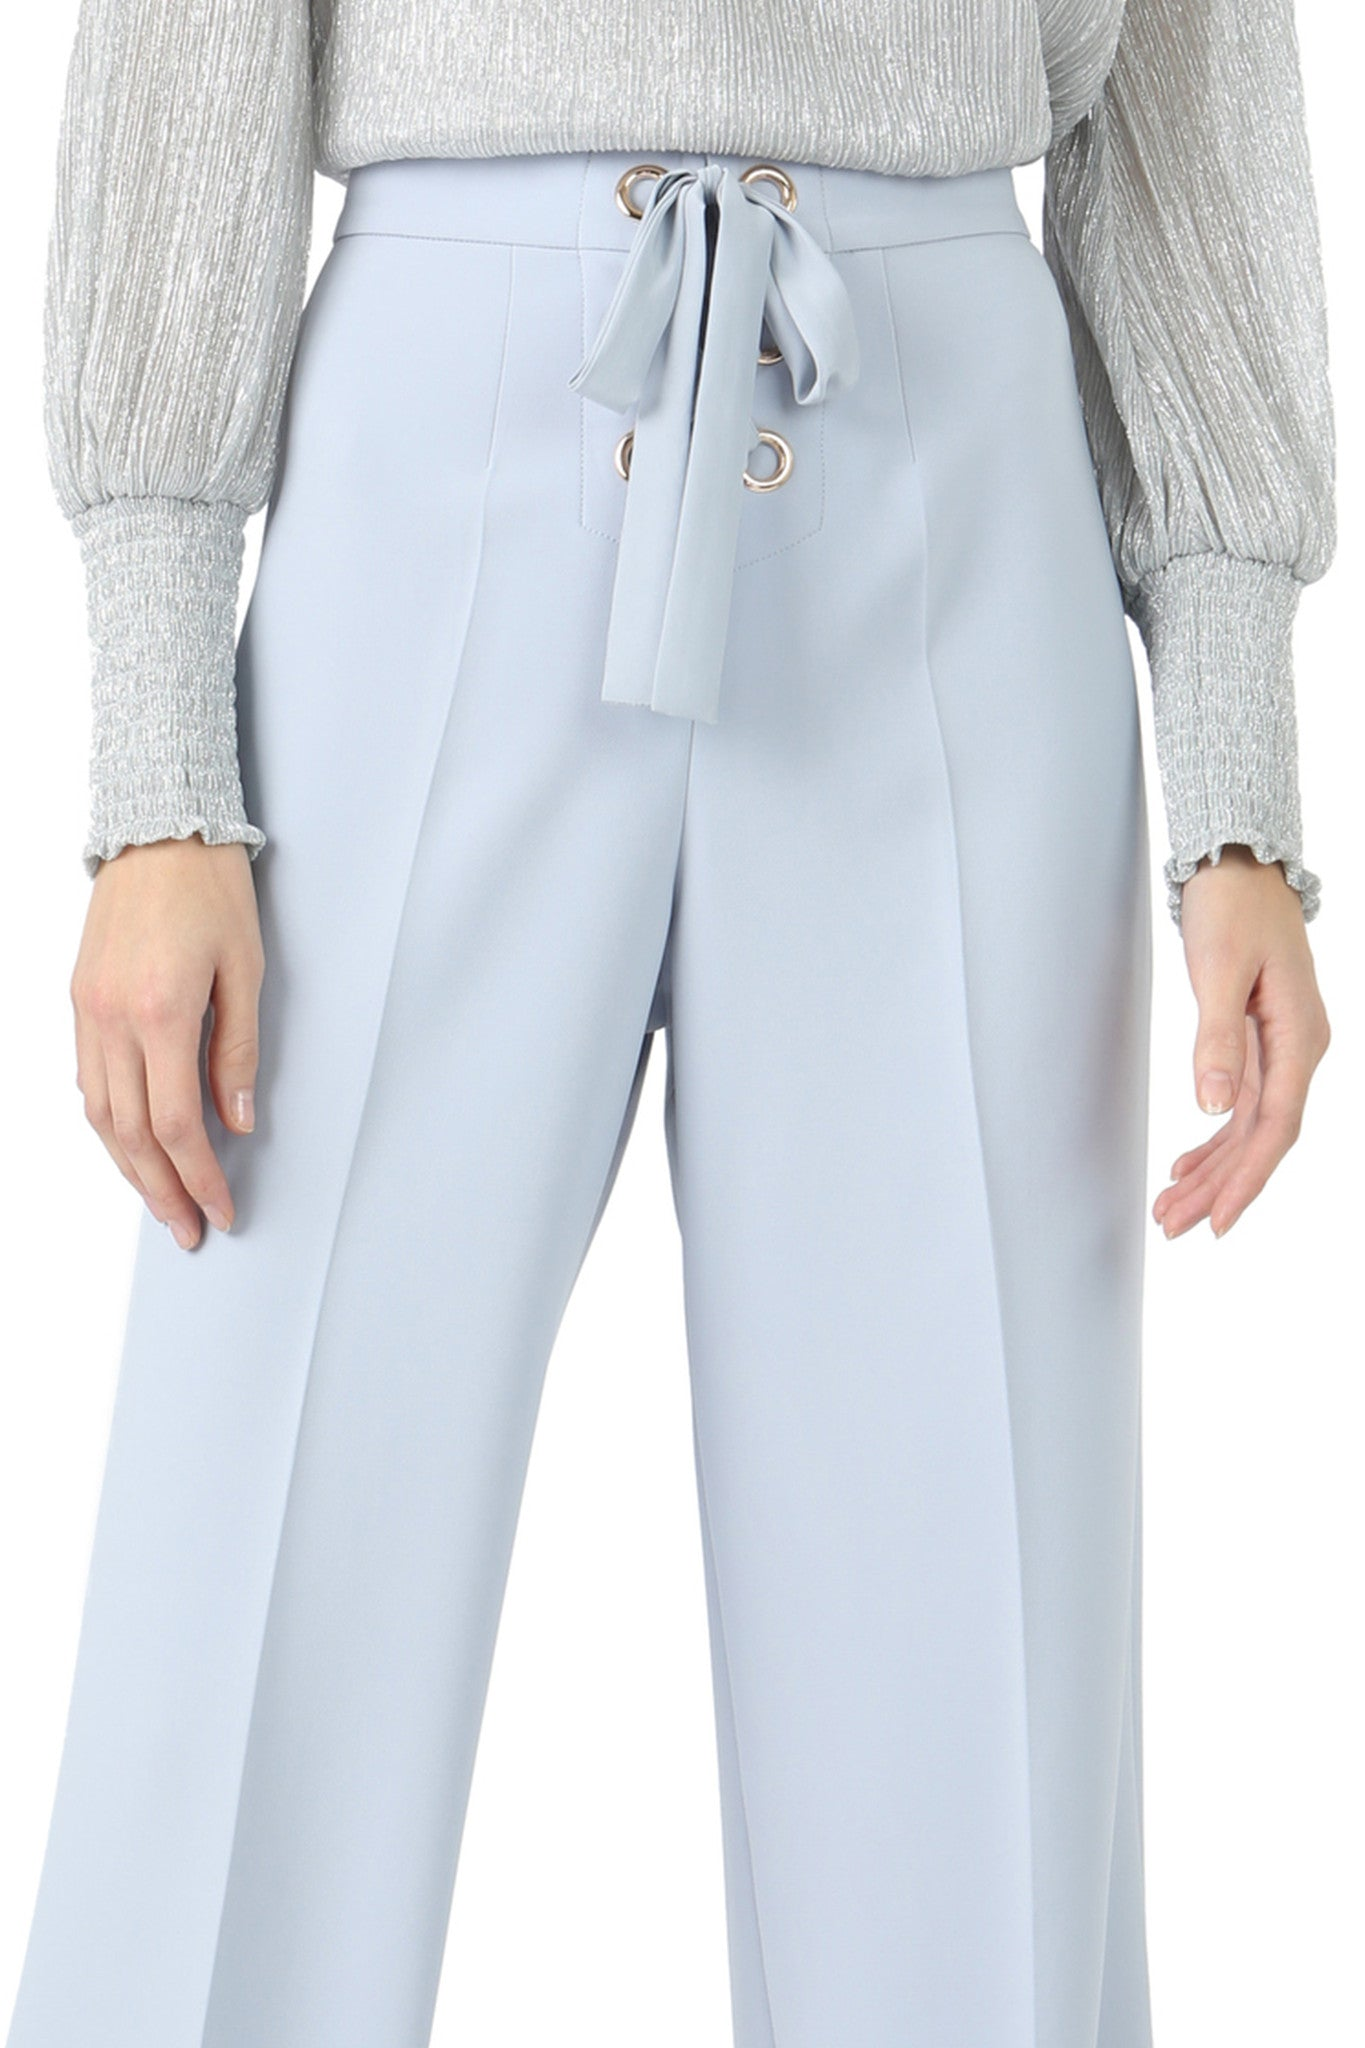 Jay Godfrey Ice Blue Lace-Up Wide Leg Pants - Zoom View